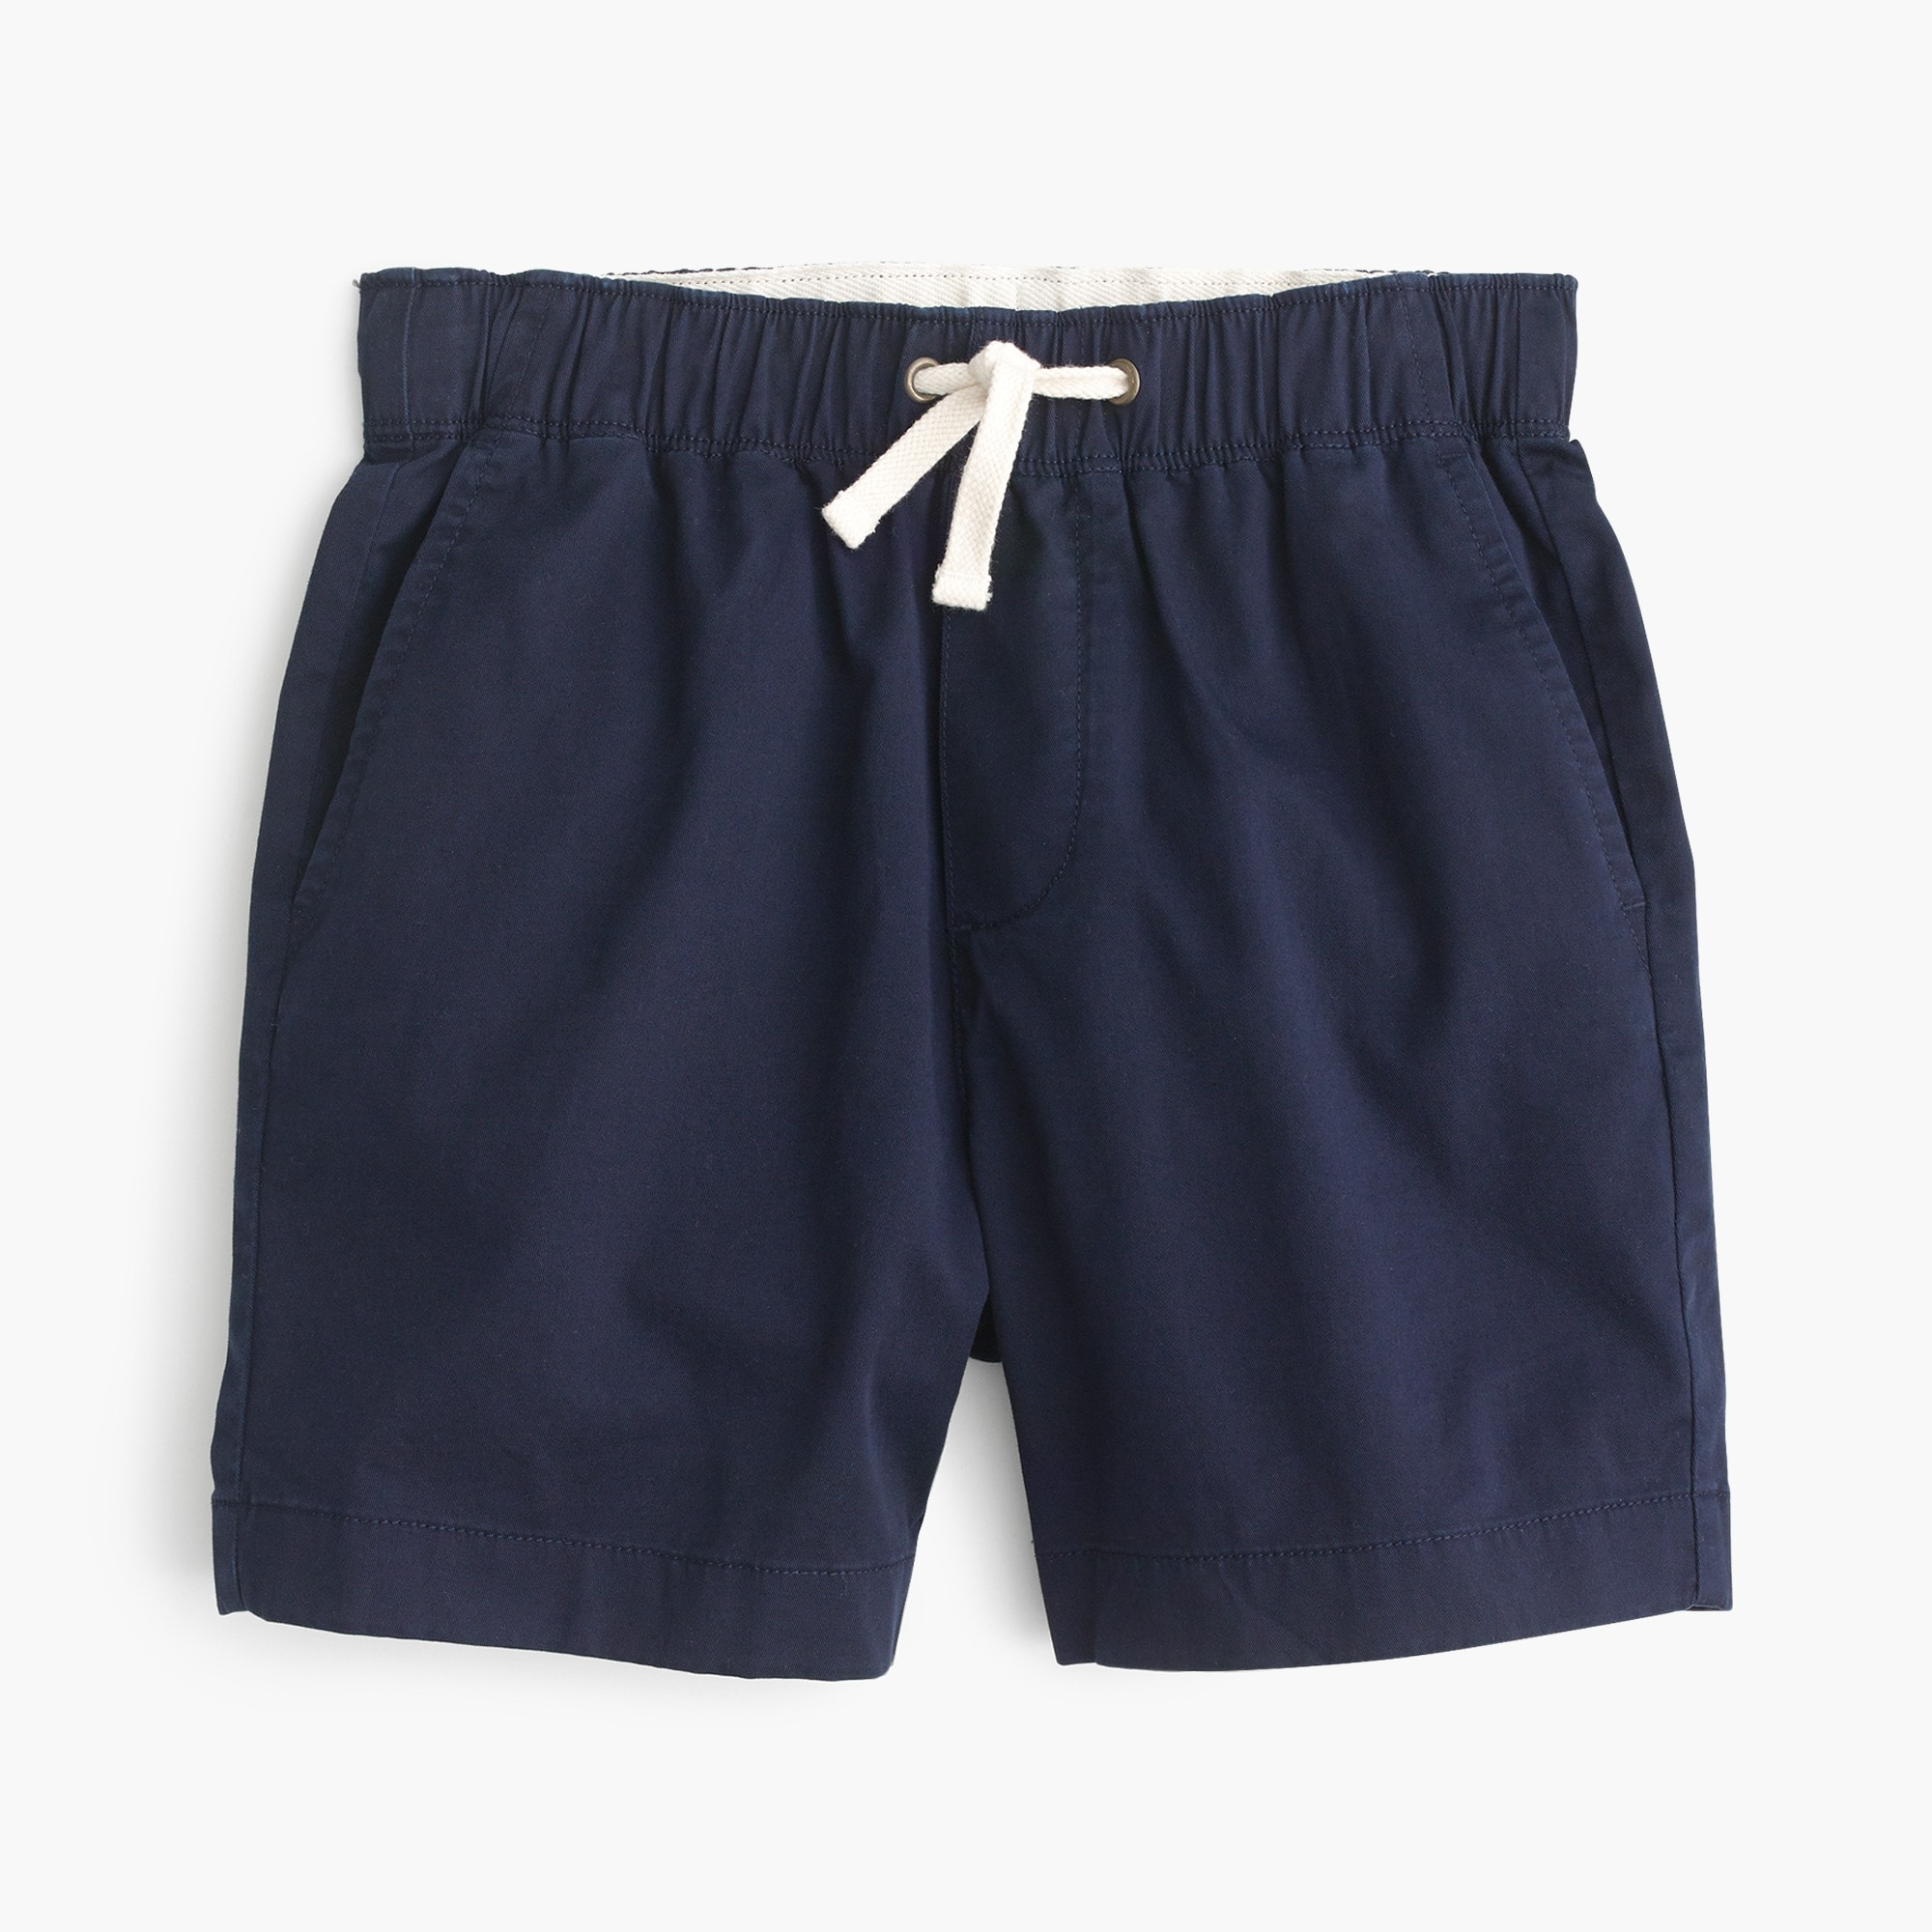 Boys' stretch dock short in lightweight chino boy shorts c